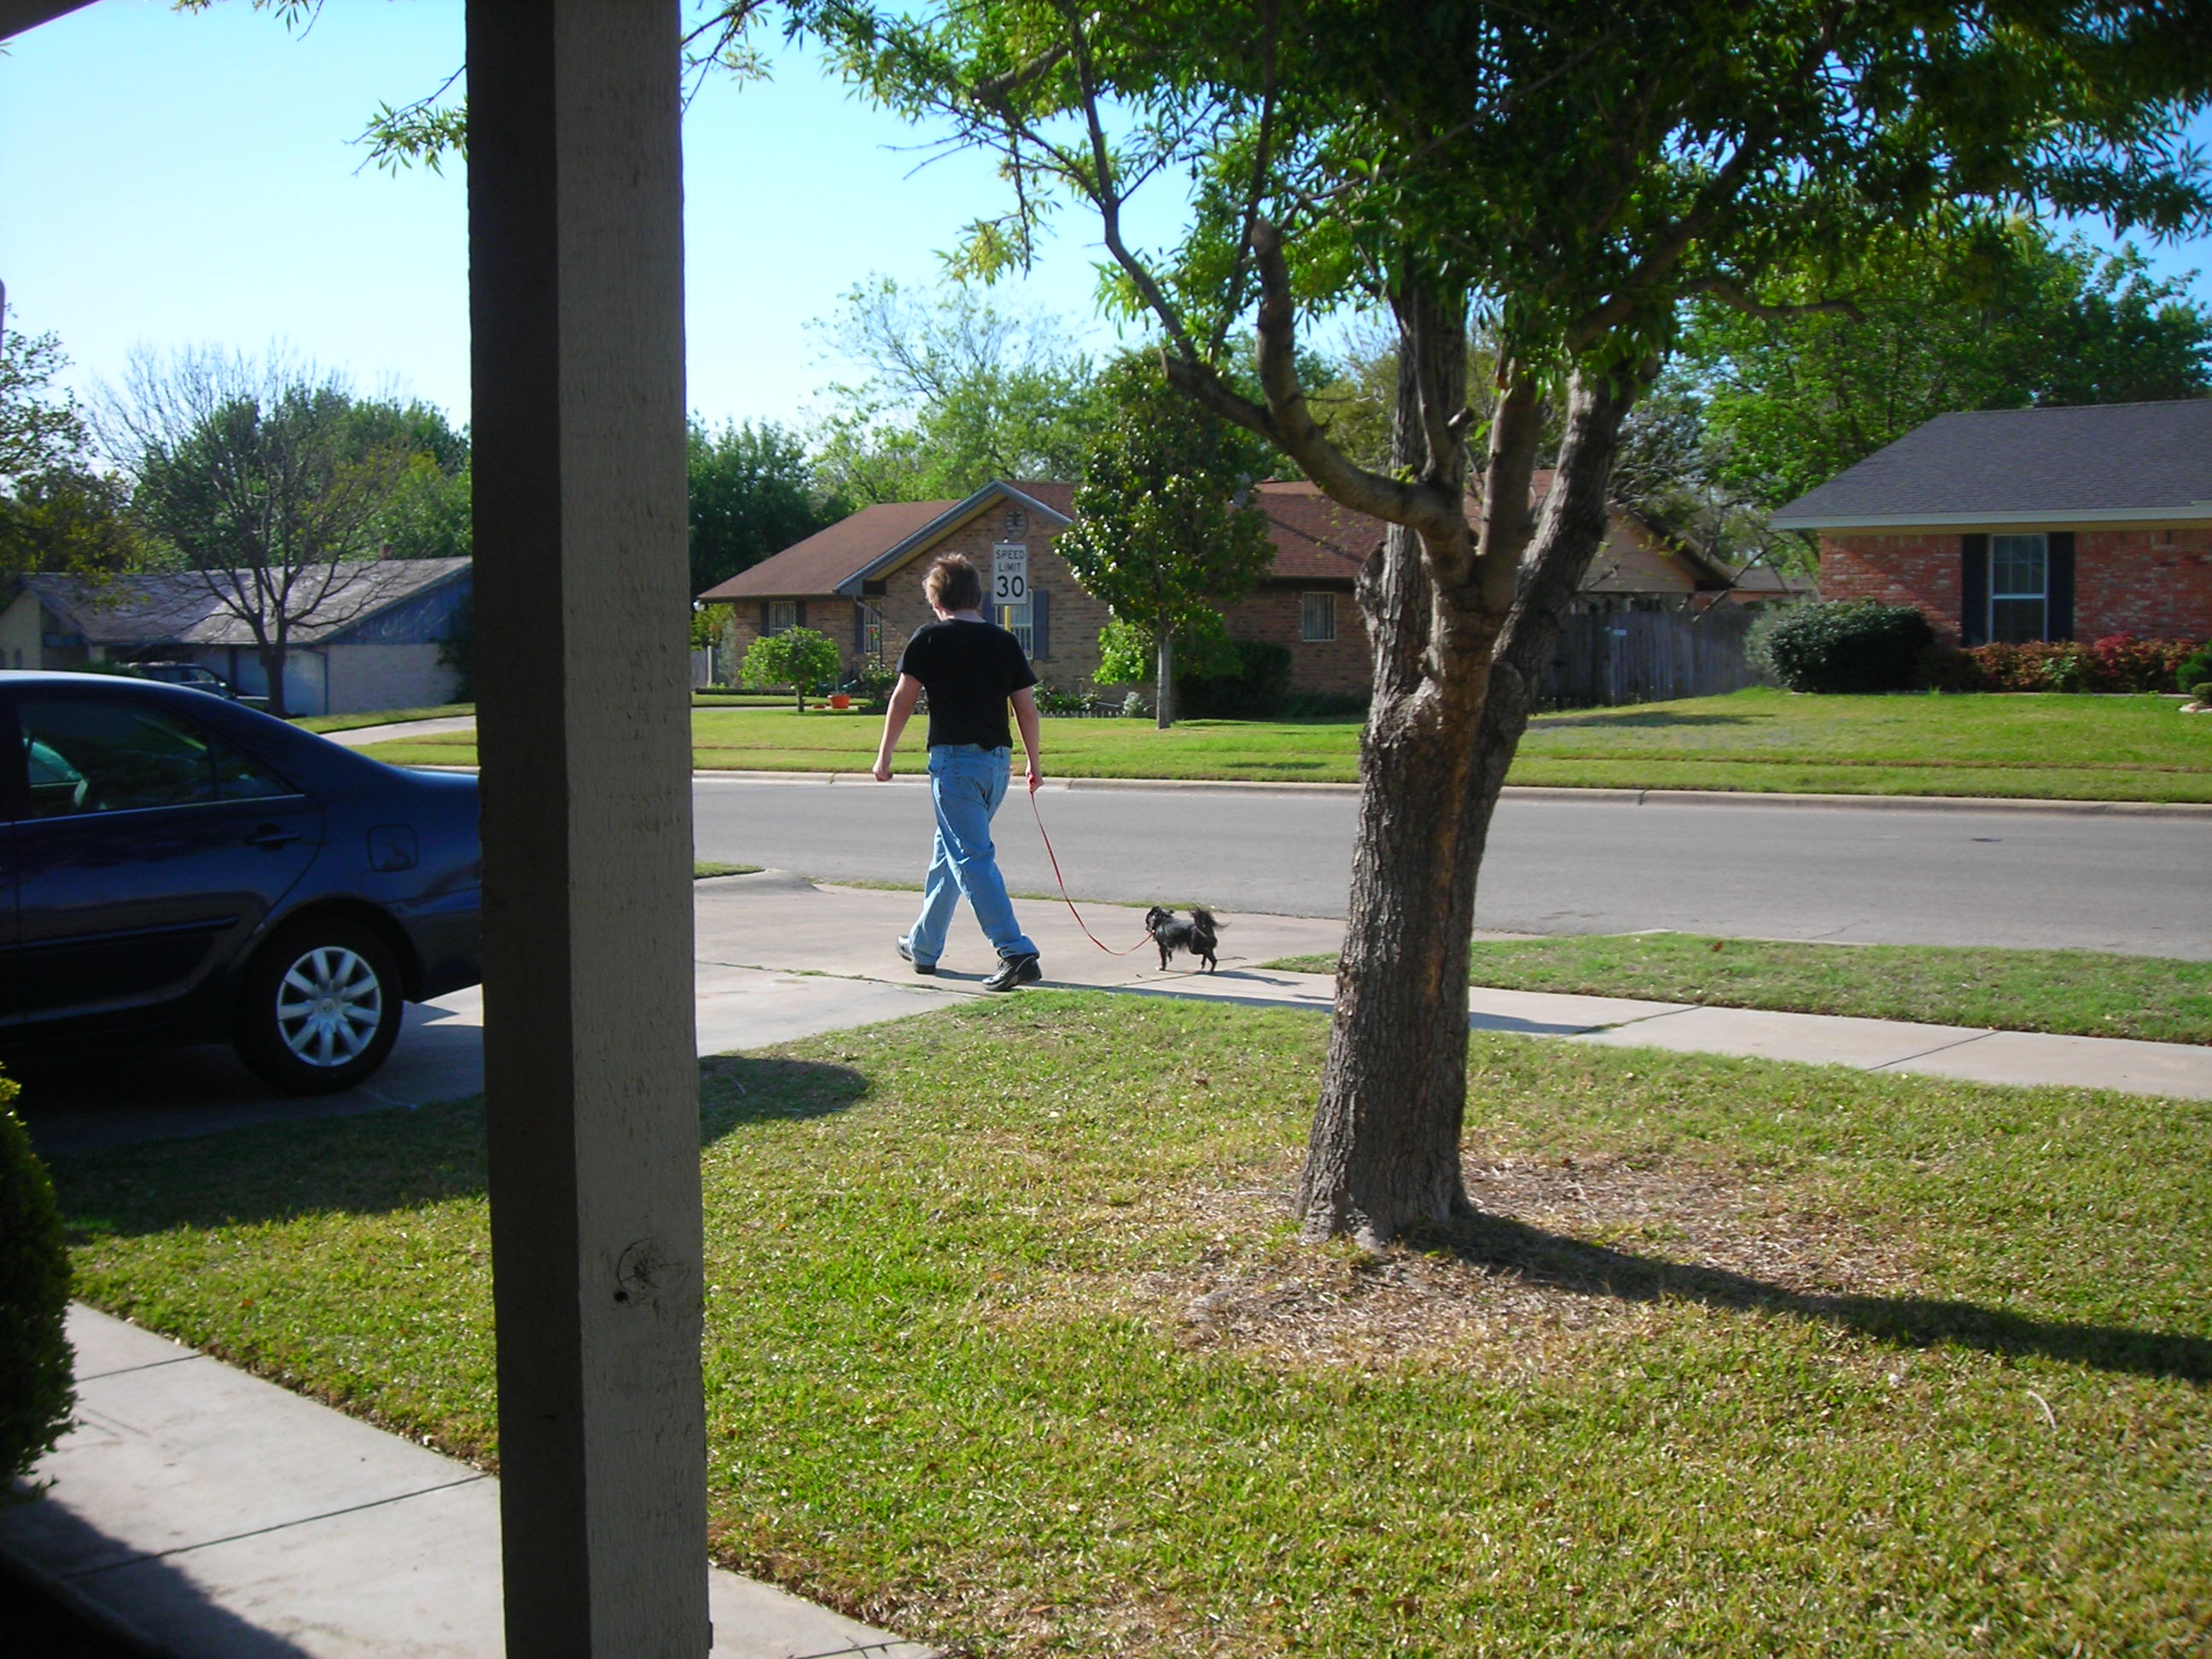 a boy and his dog ... goin' for a walk 'round the 'hood